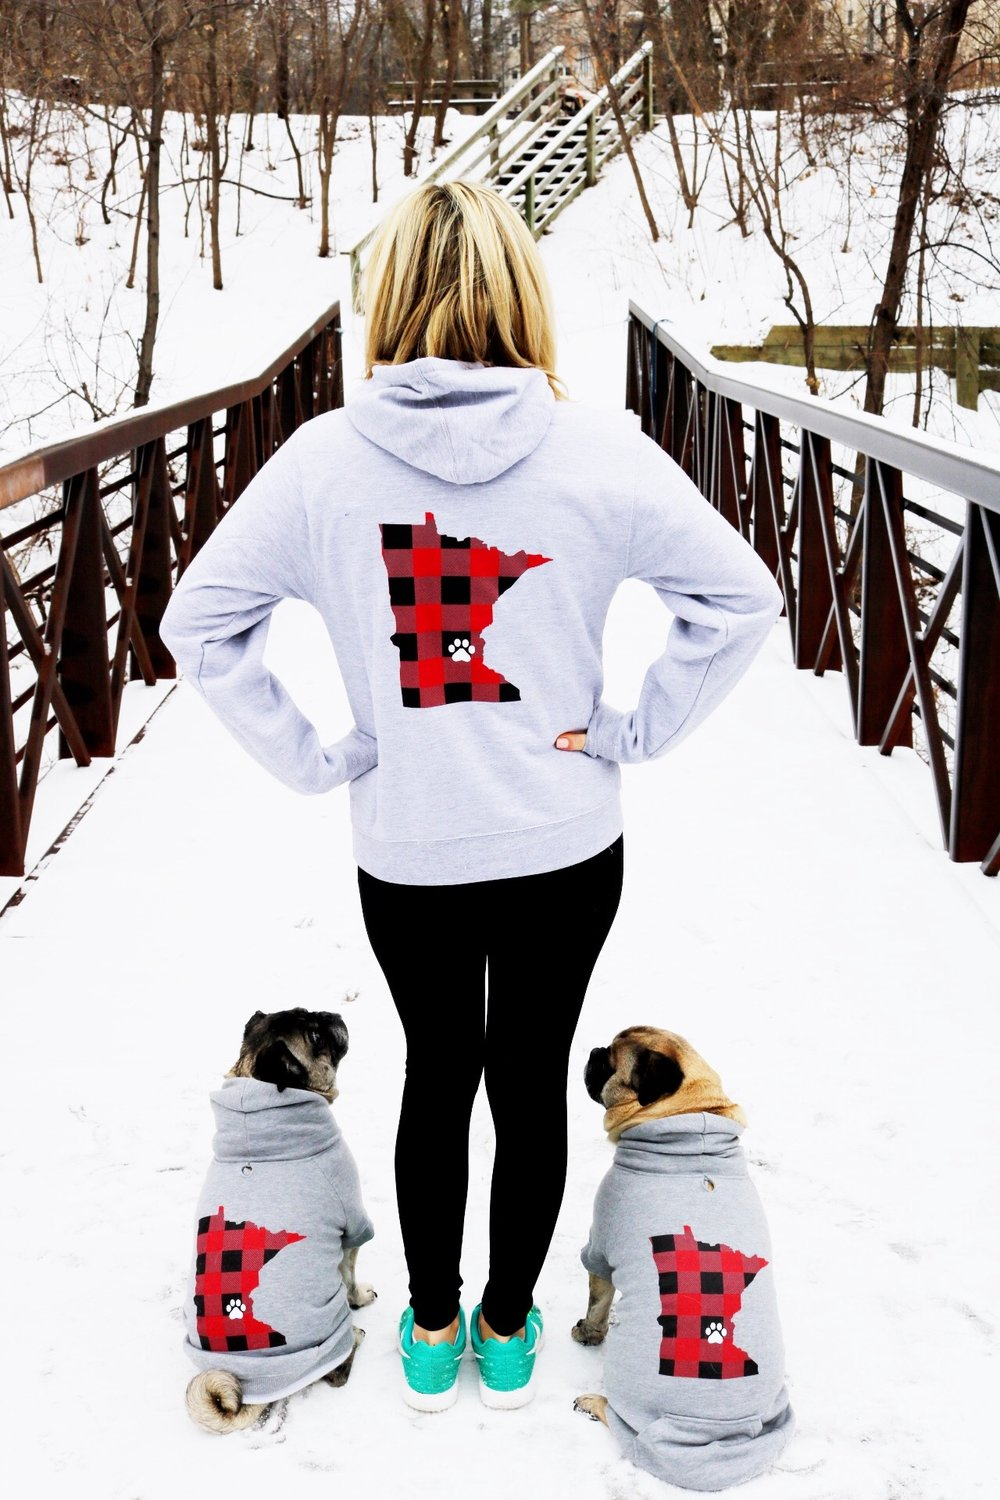 Sam and Pugs Matching Hoodies.JPG